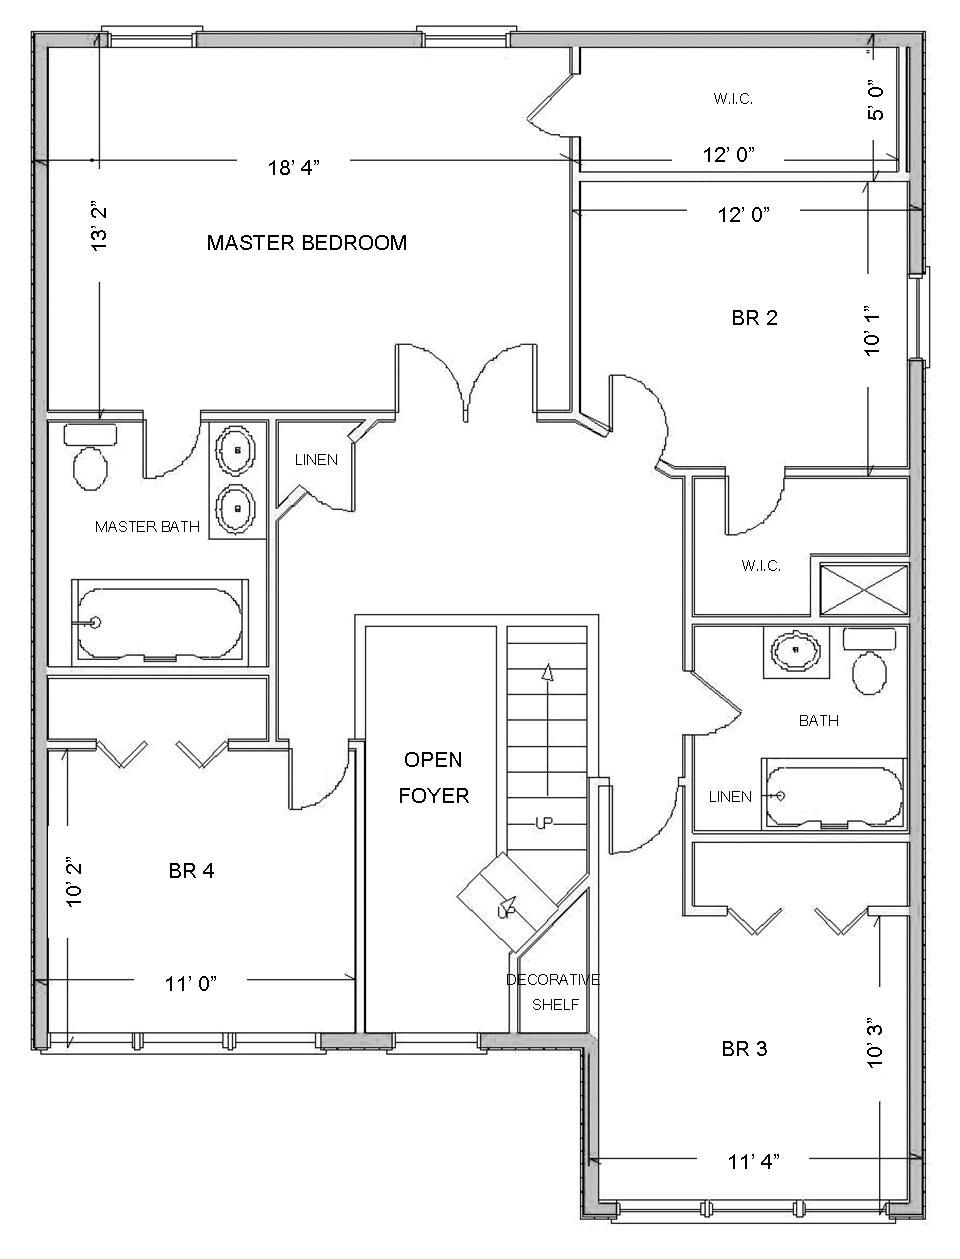 Attractive Floor Plans Based True Story With Smart Draw Floor Plan Using White Blank Print Displaying Ma Floor Plan Design House Layout Plans House Floor Plans